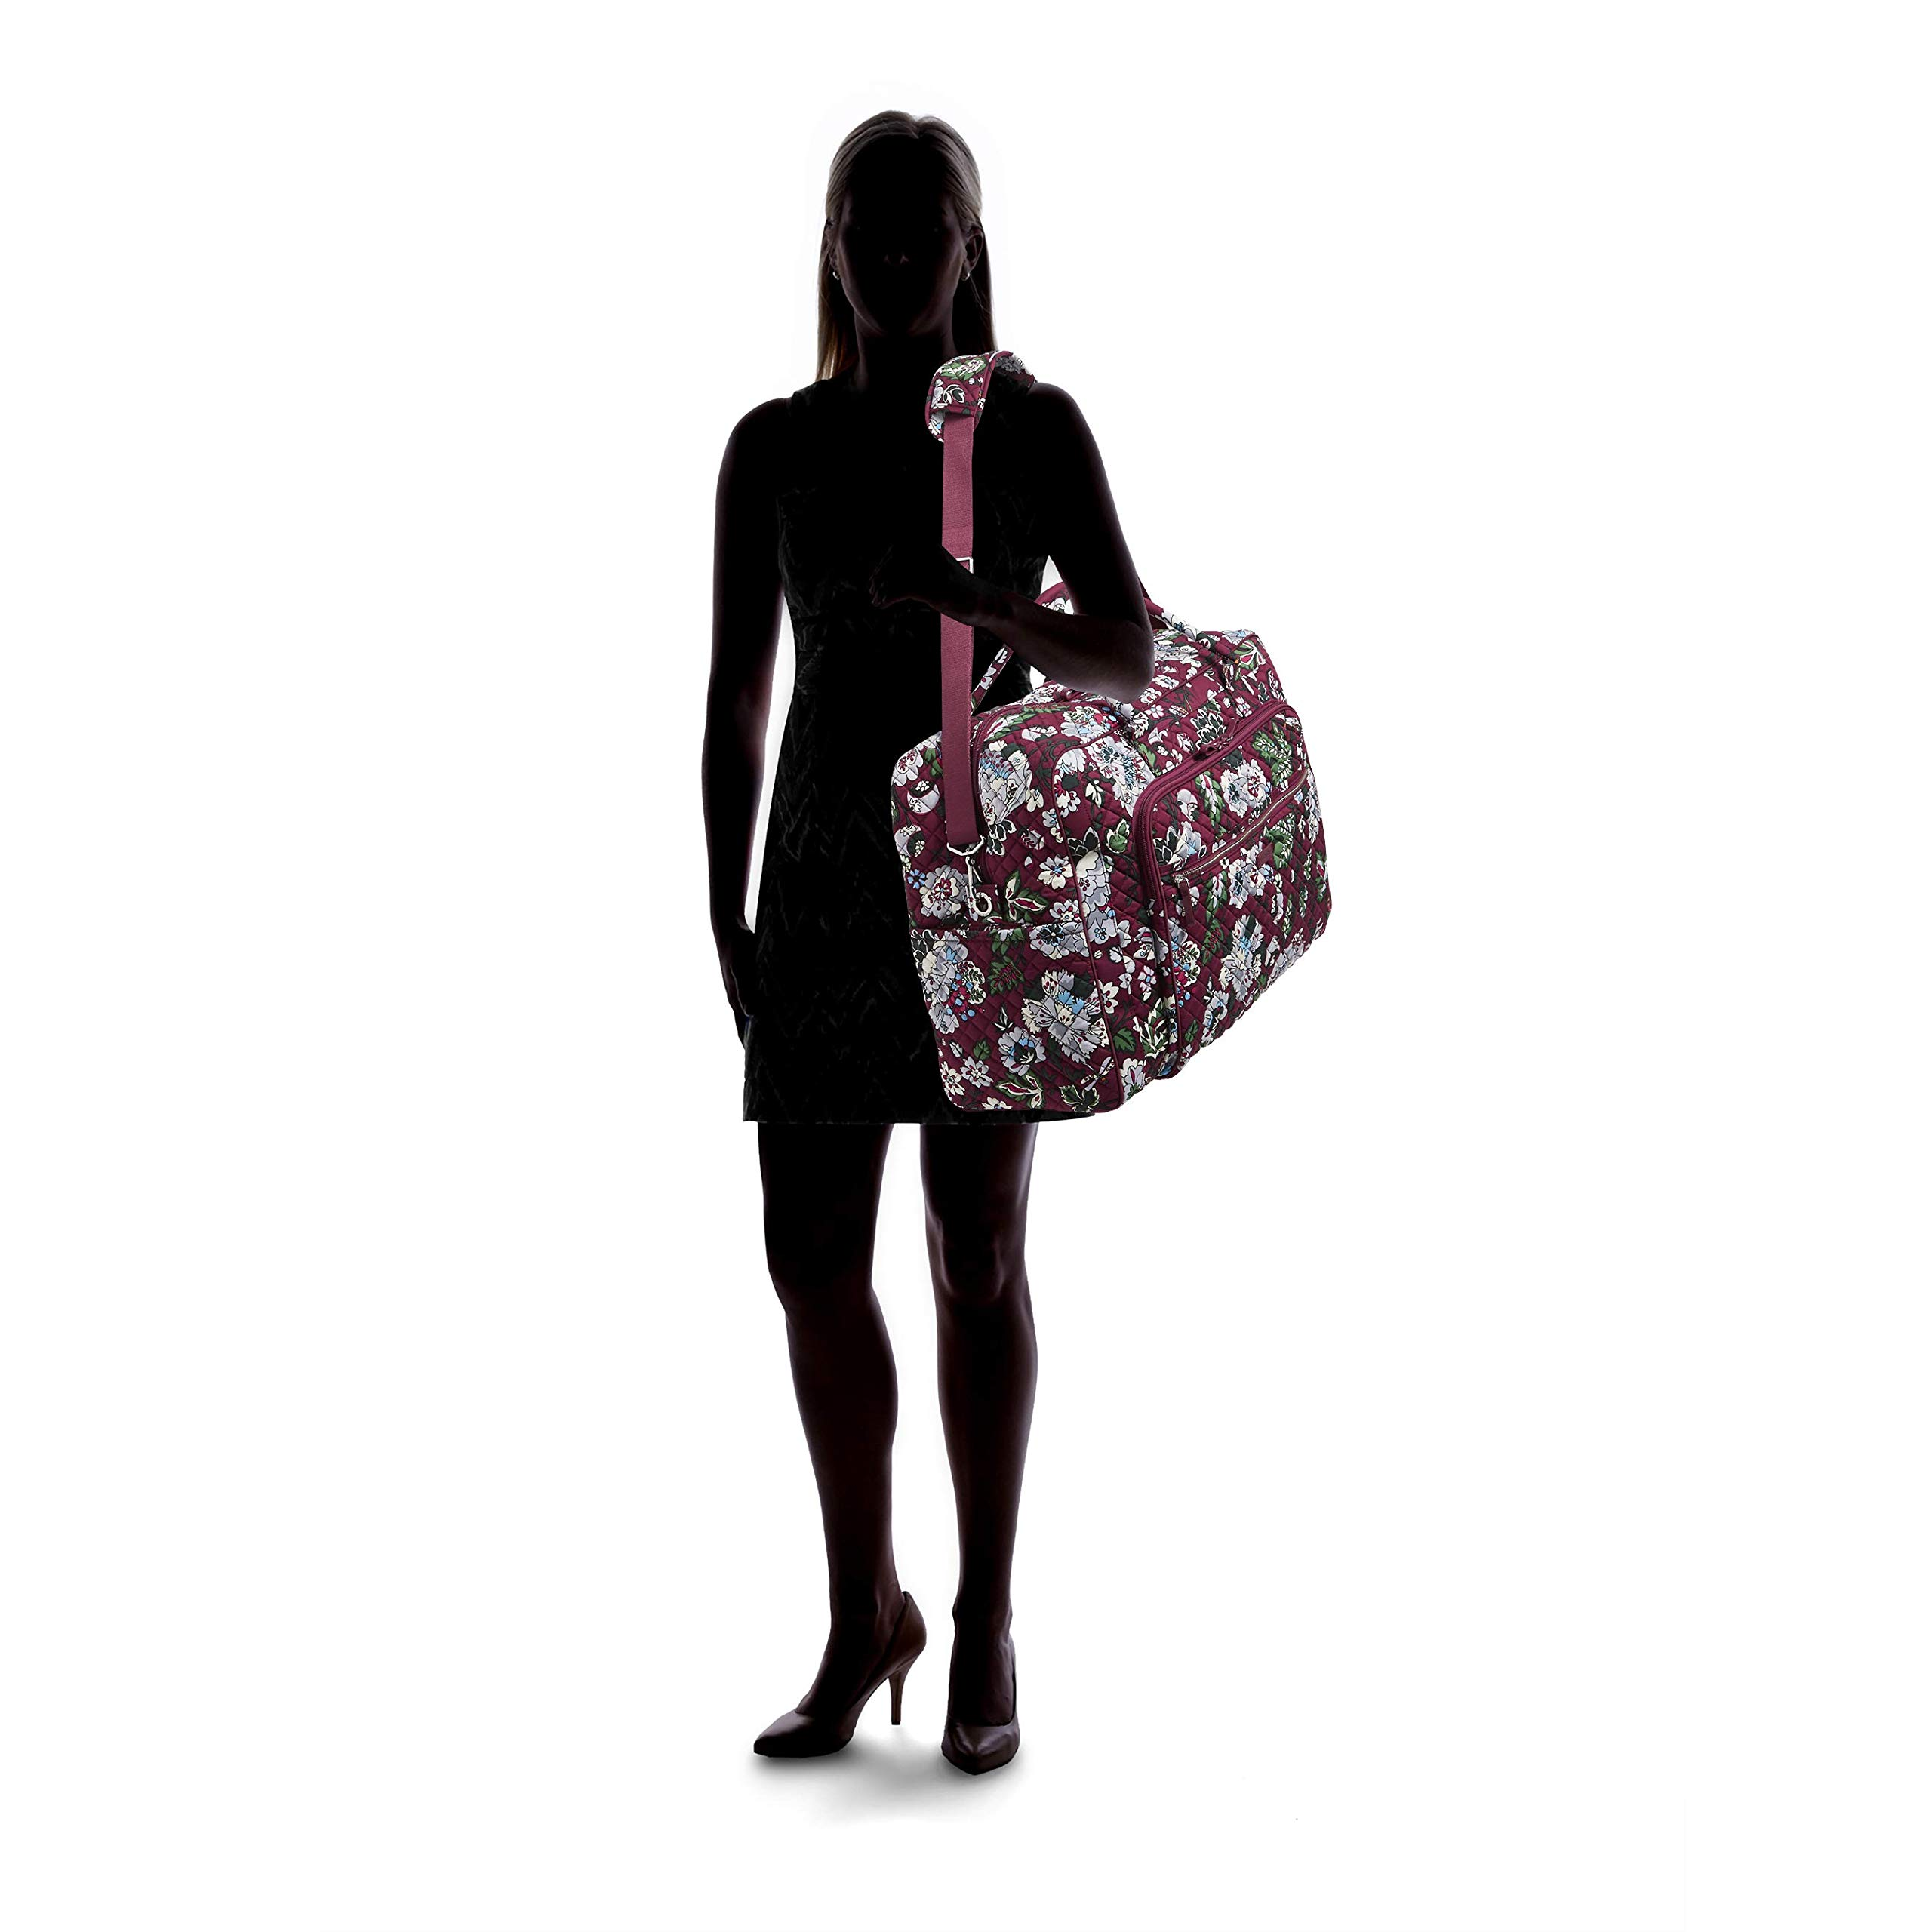 Vera Bradley Iconic Grand Weekender Travel Bag, Signature Cotton, bordeaux blooms by Vera Bradley (Image #8)